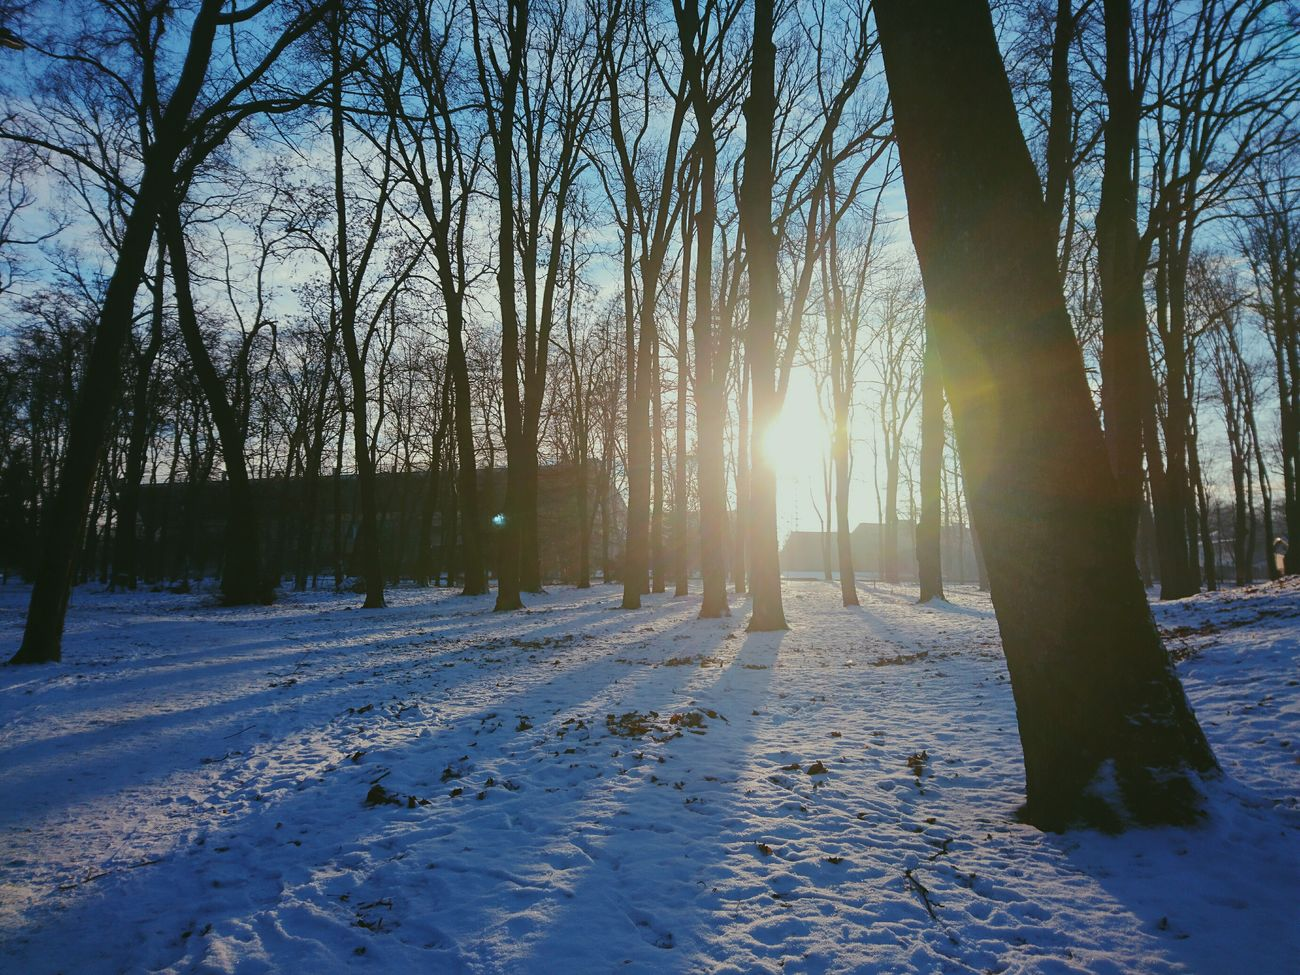 Tree Nature Sunlight Beauty In Nature Growth Outdoors No People Sky Day Great Day  Snow Good Day Hanging Out Winter Trees Wintertime Winter Beauty In Nature Winter_collection Cold Temperature Tree Nature Sun Great Day  White